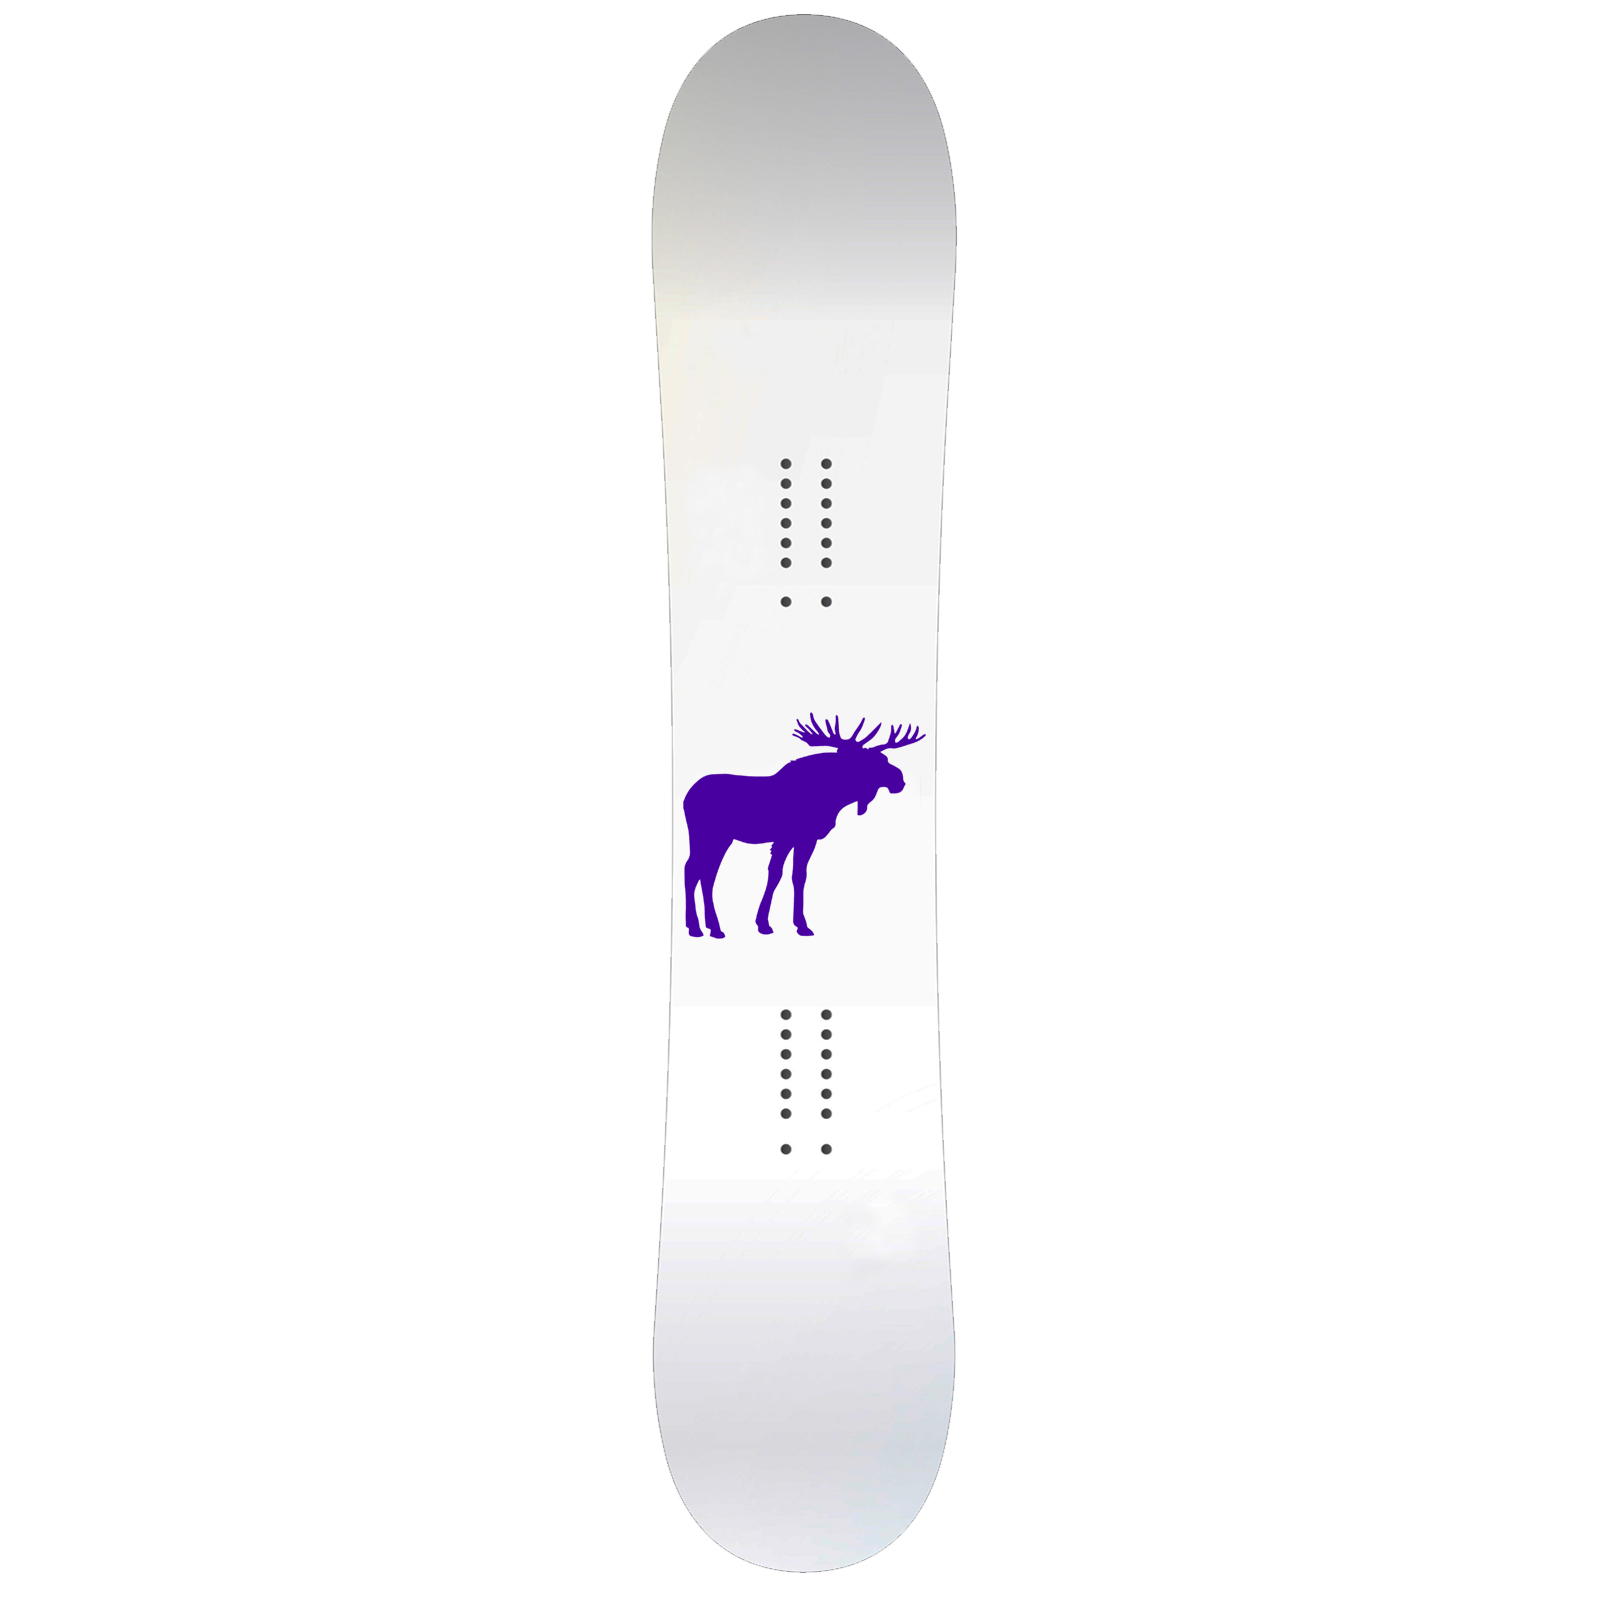 Moose Body Silhouette Snowboard Sticker All Weather Vinyl Decal